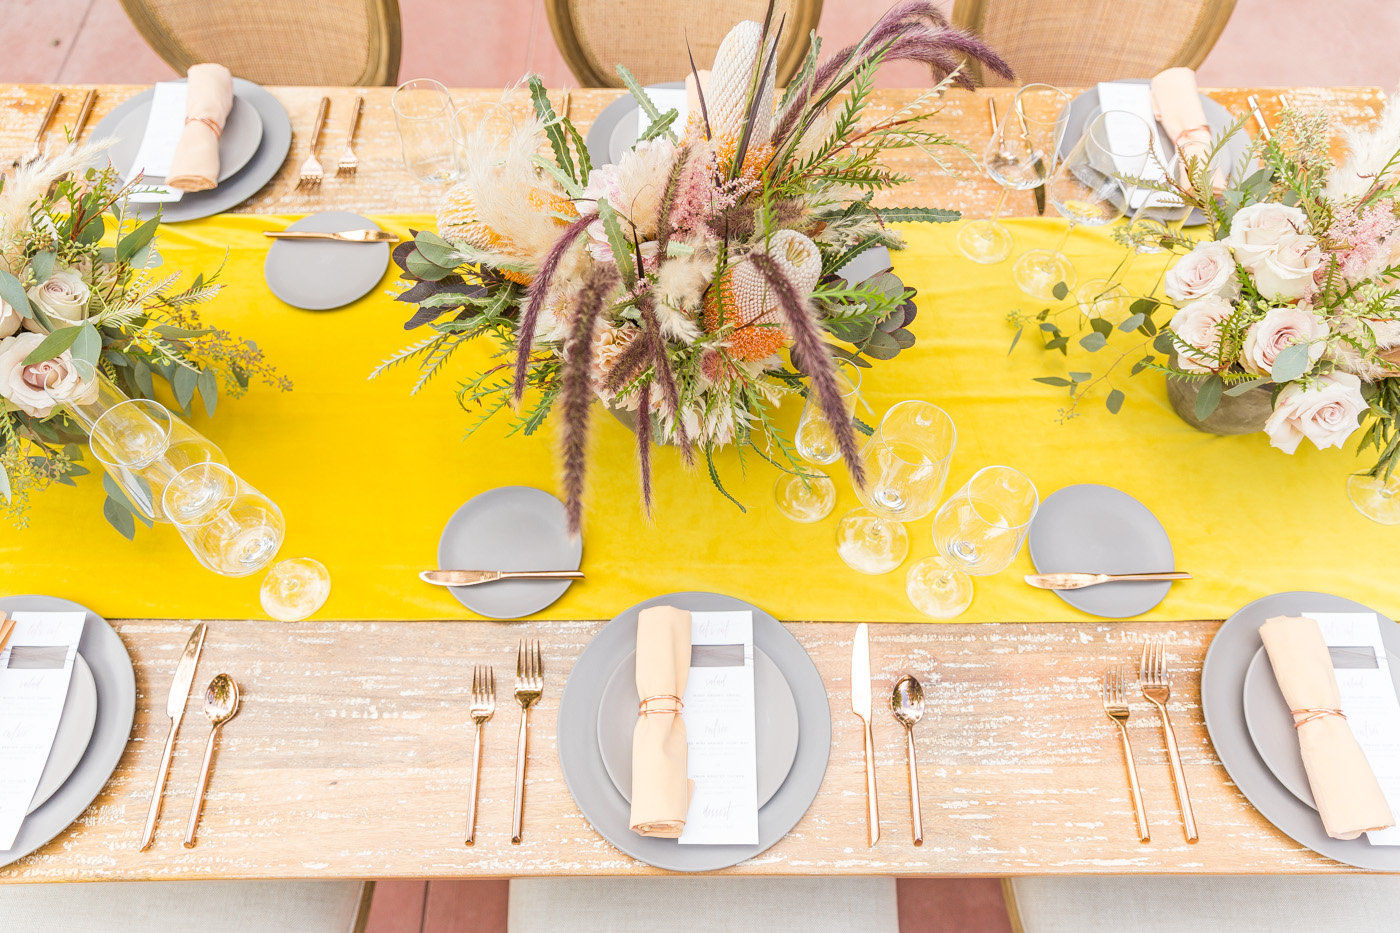 bright wedding tablescape - photo by Karlee K Photography http://ruffledblog.com/cheerful-desert-wedding-inspiration-with-bright-yellow